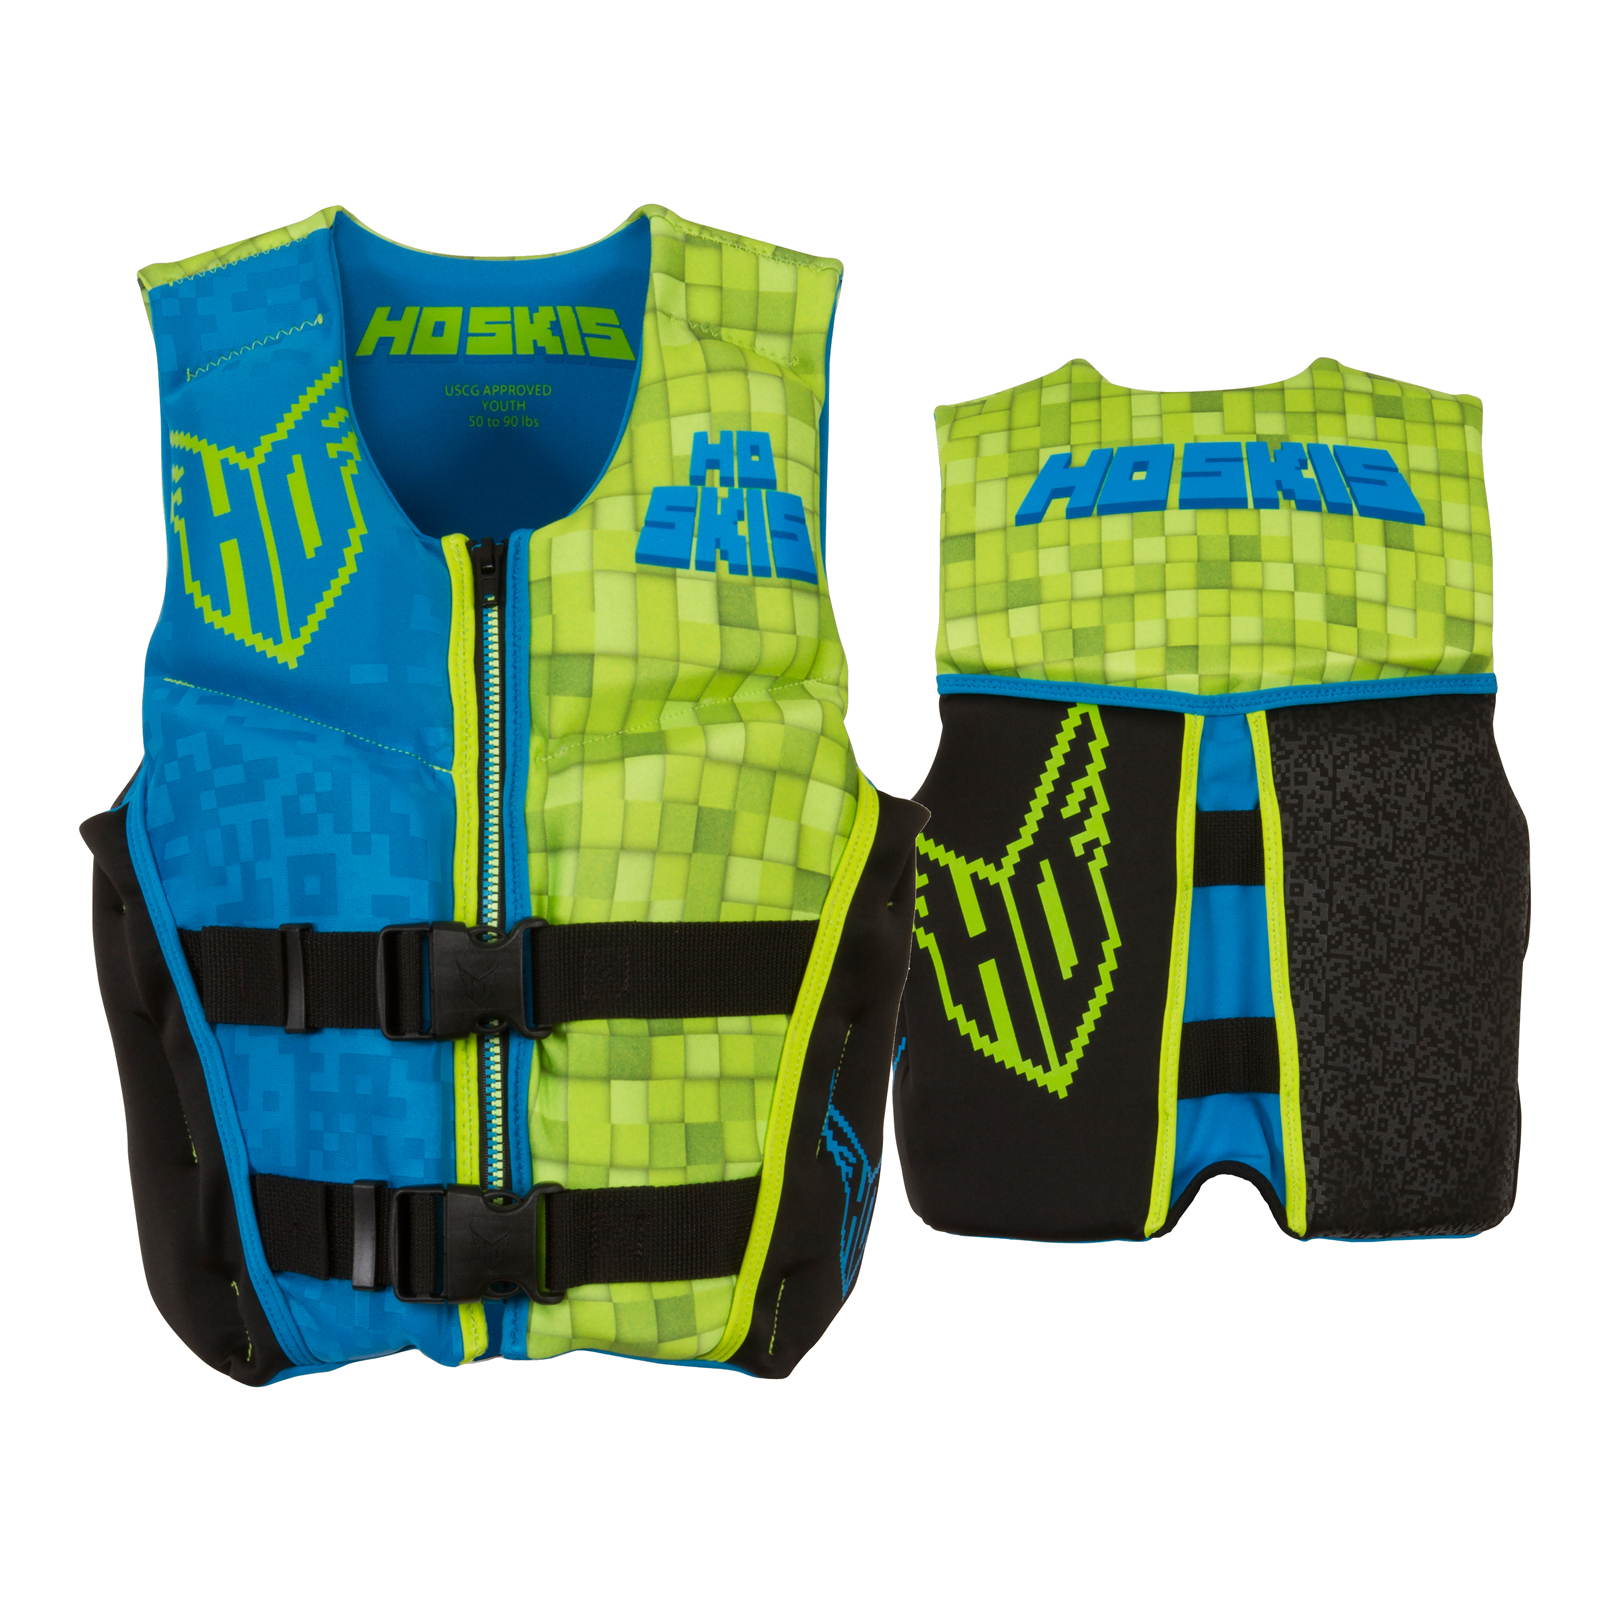 BOYS YOUTH PURSUIT NEO VEST HO SPORTS 2017